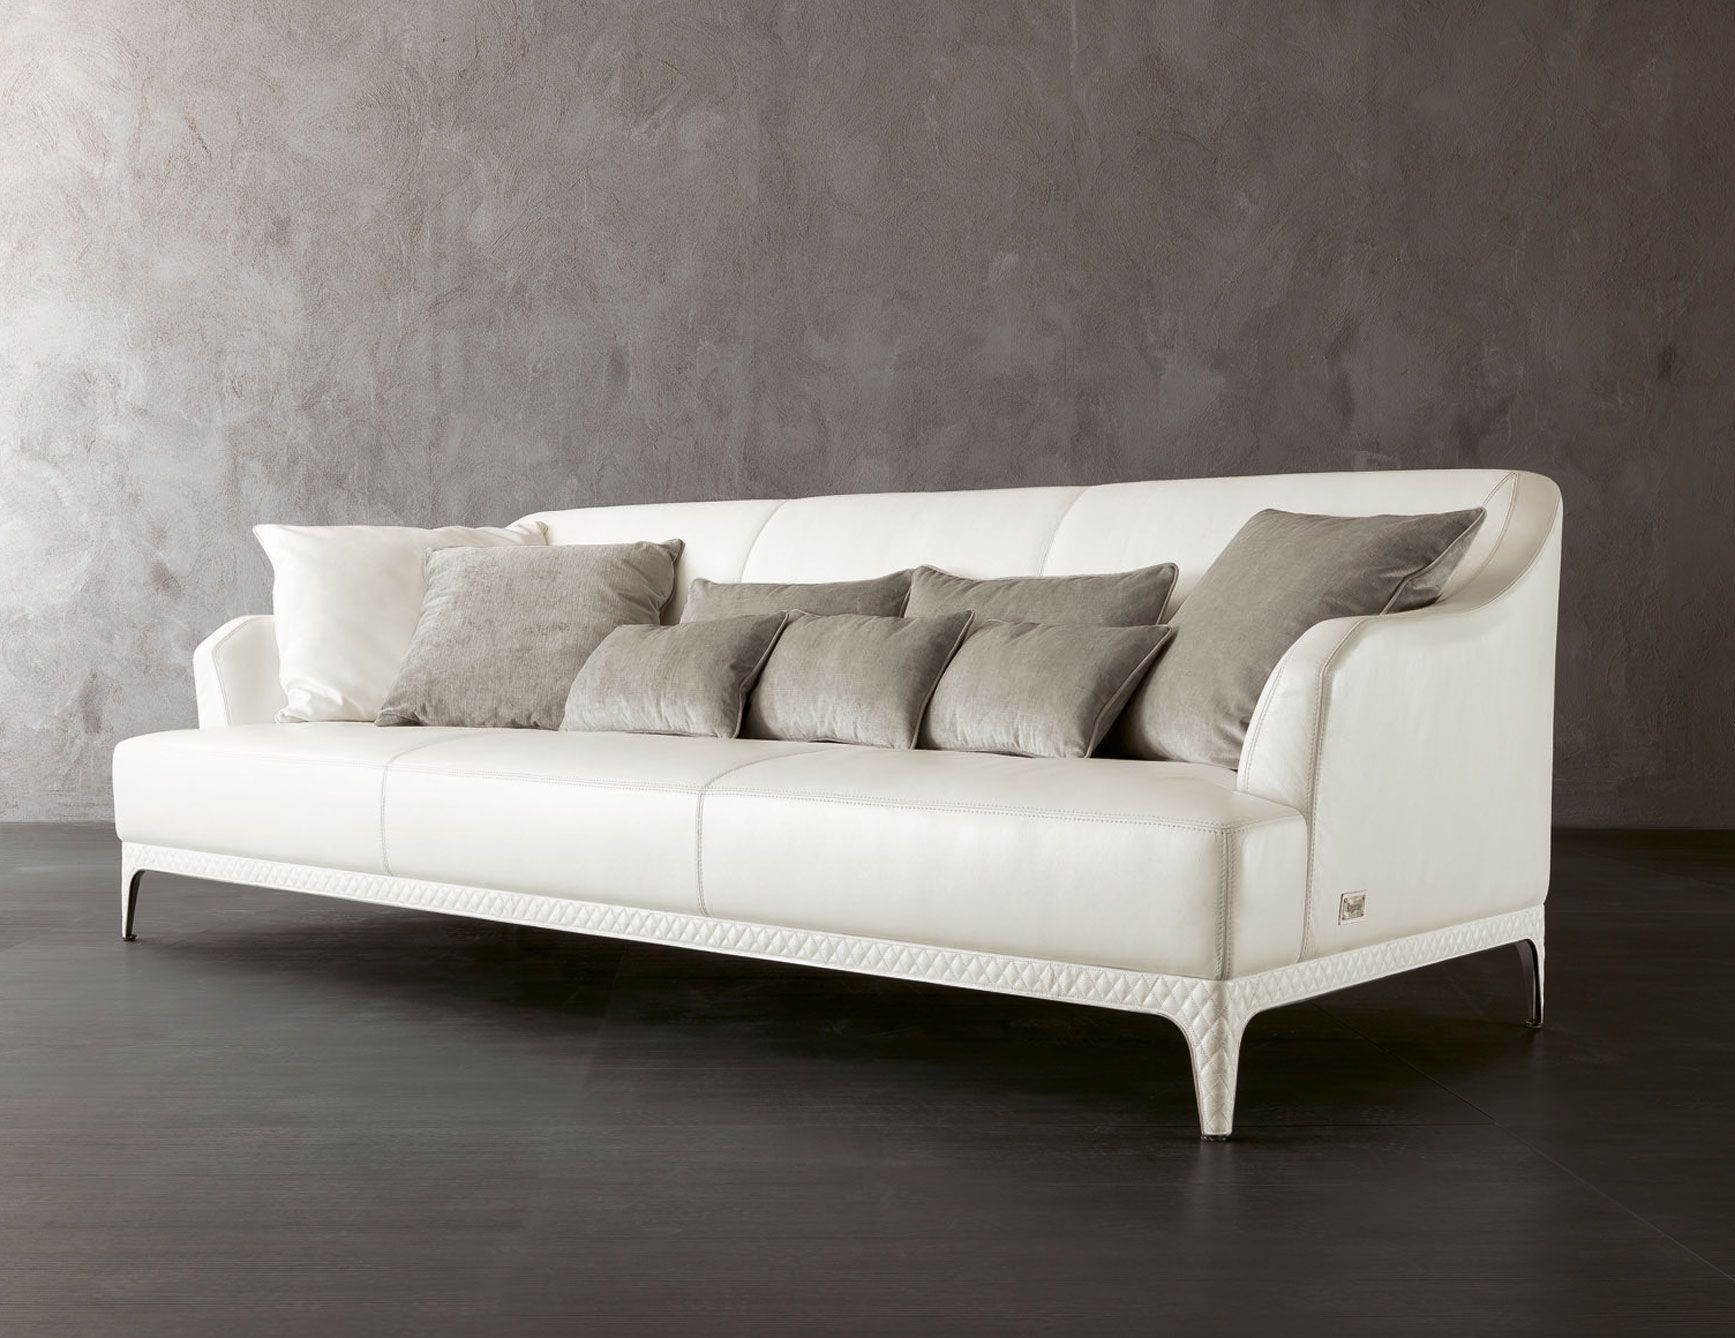 Oscar W45 luxury Italian sofa upholstered in leather This luxury